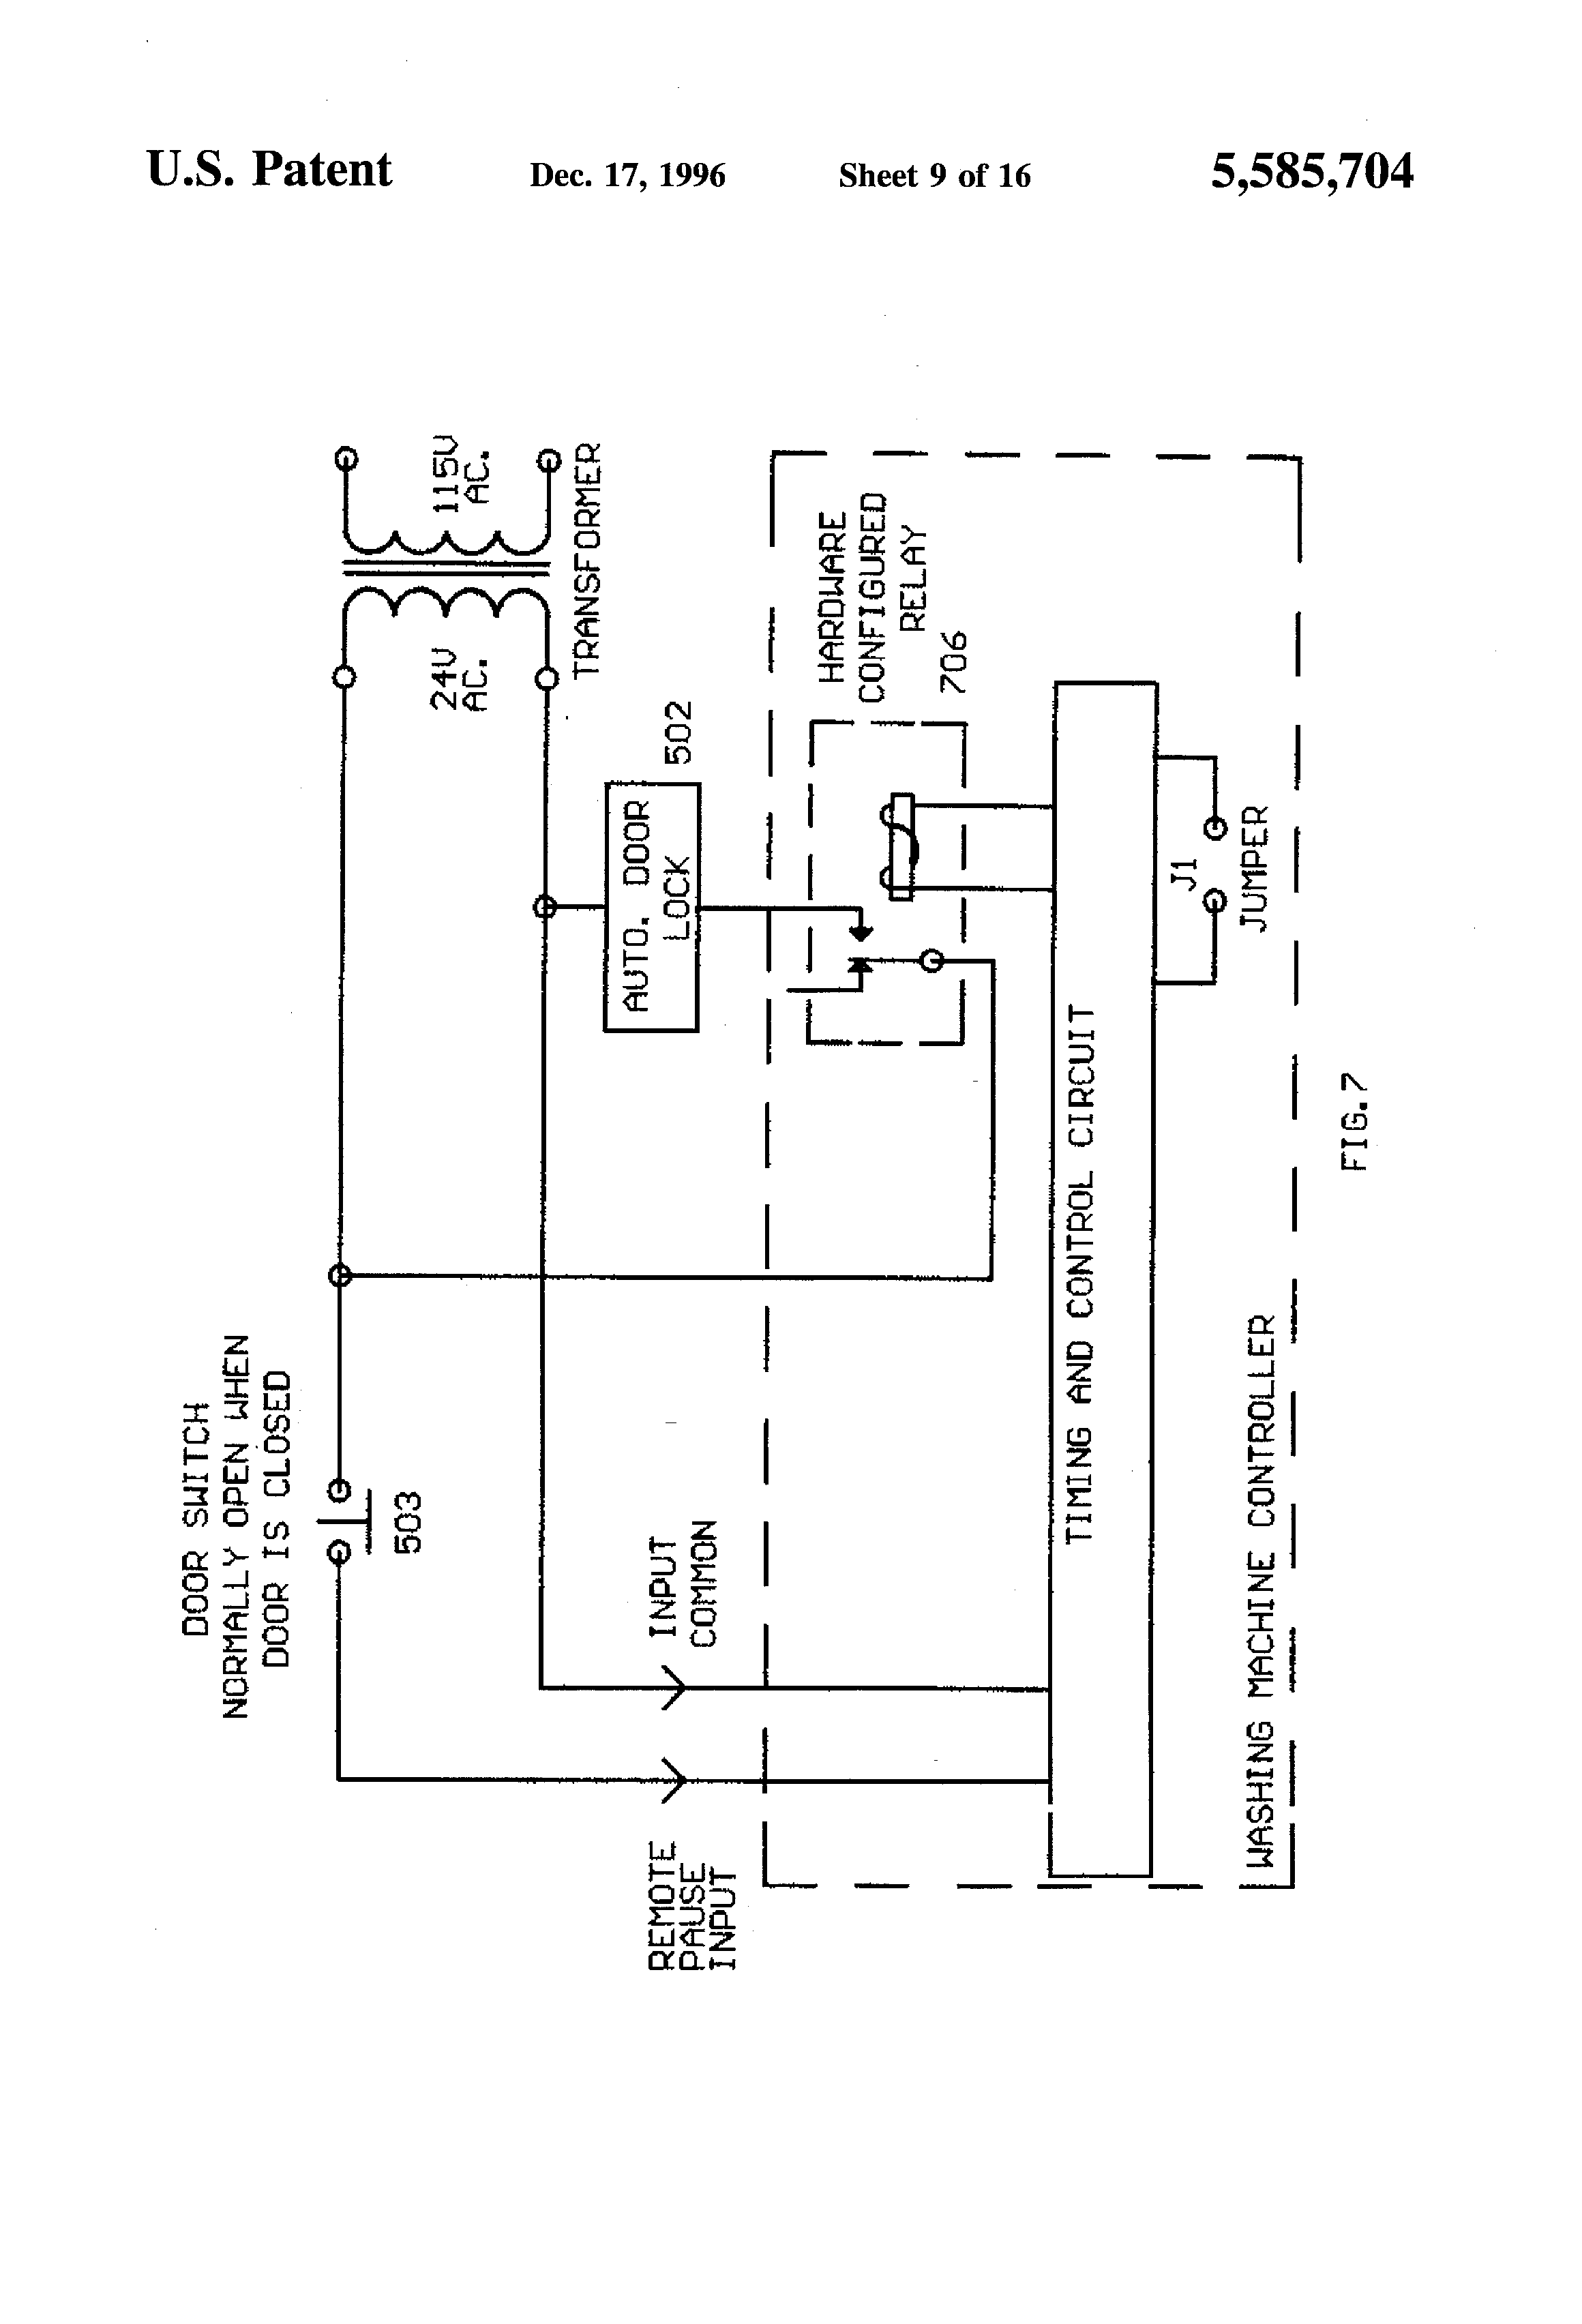 washing machine motor wiring diagram power window diagrams patent us5585704 computer means for commercial